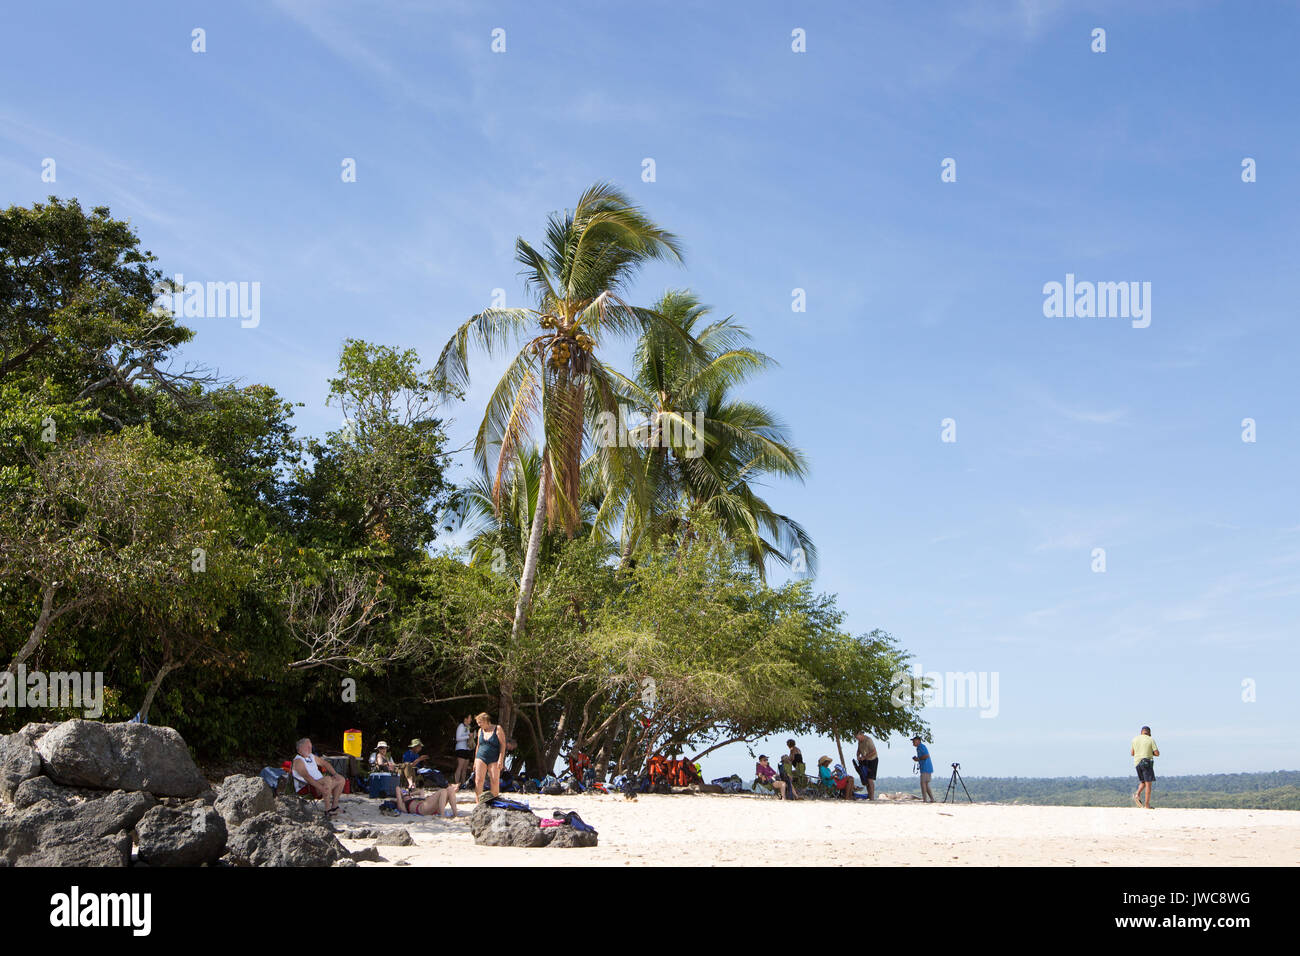 Visitors to Isla Granito de Oro,meaning Little Grain of Gold,sunbathe,relax and photograph on the small island. - Stock Image